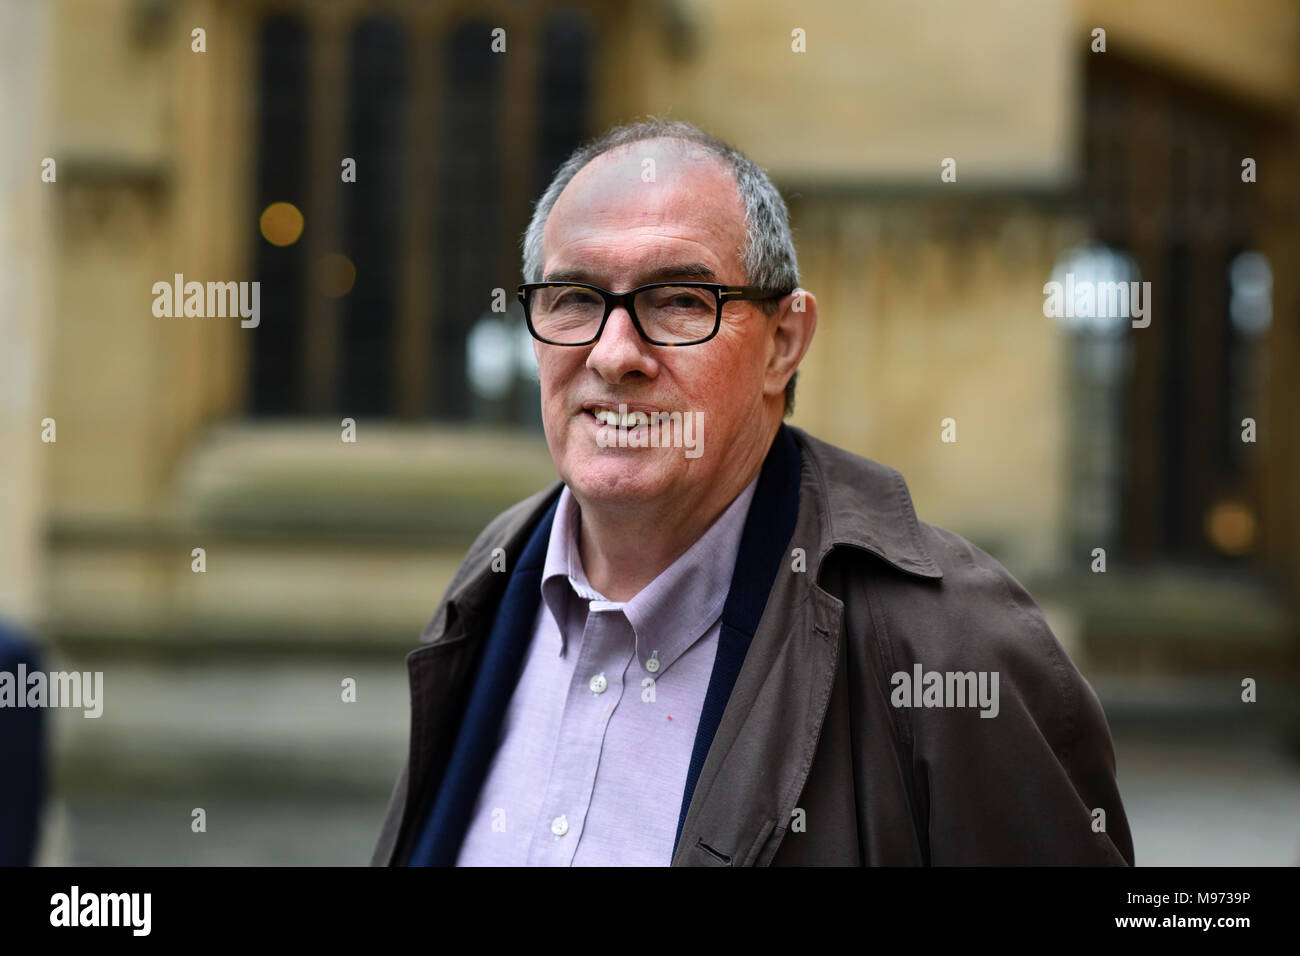 Oxford, UK. 23rd Mar, 2018. Oxford, UK. 23rd March, 2018. Will Hutton at Sheldonian Theatre for  FT Weekend Oxford Literary Festival.23 rd March 2018. Oxford . ' What Europe Does For Us and How to Keep the Best of It'.   Credit: Richard Cave/Alamy Live News - Stock Image